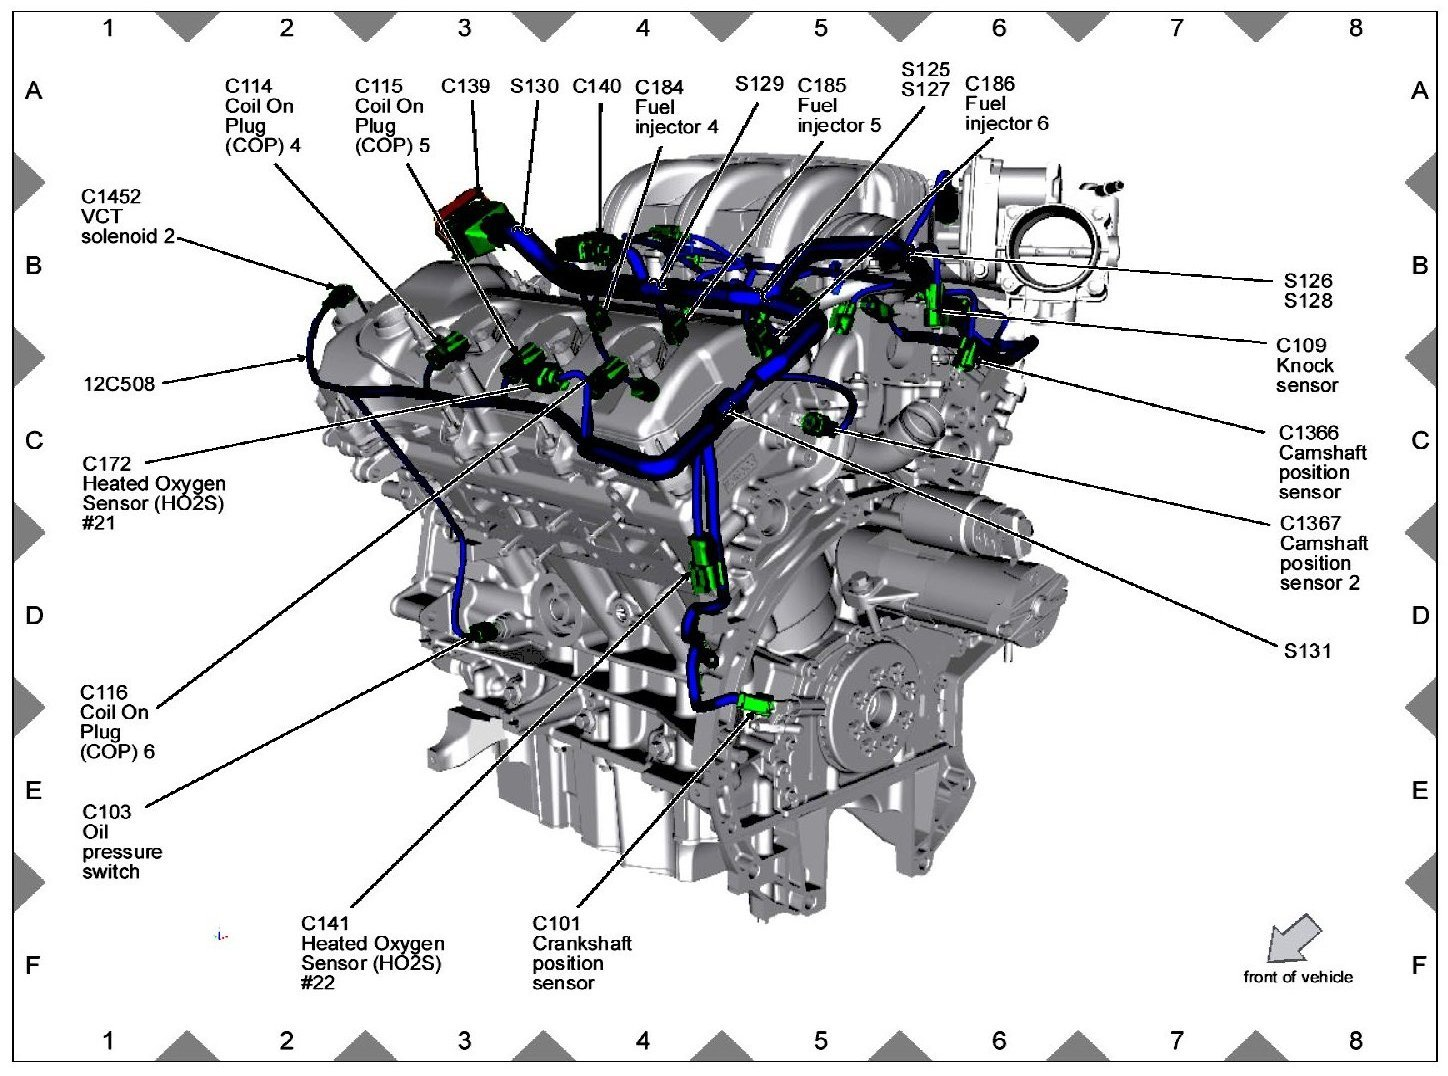 2001 Windstar Camshaft Position Sensor Location on 2002 Ford Windstar Fuse Box Diagram